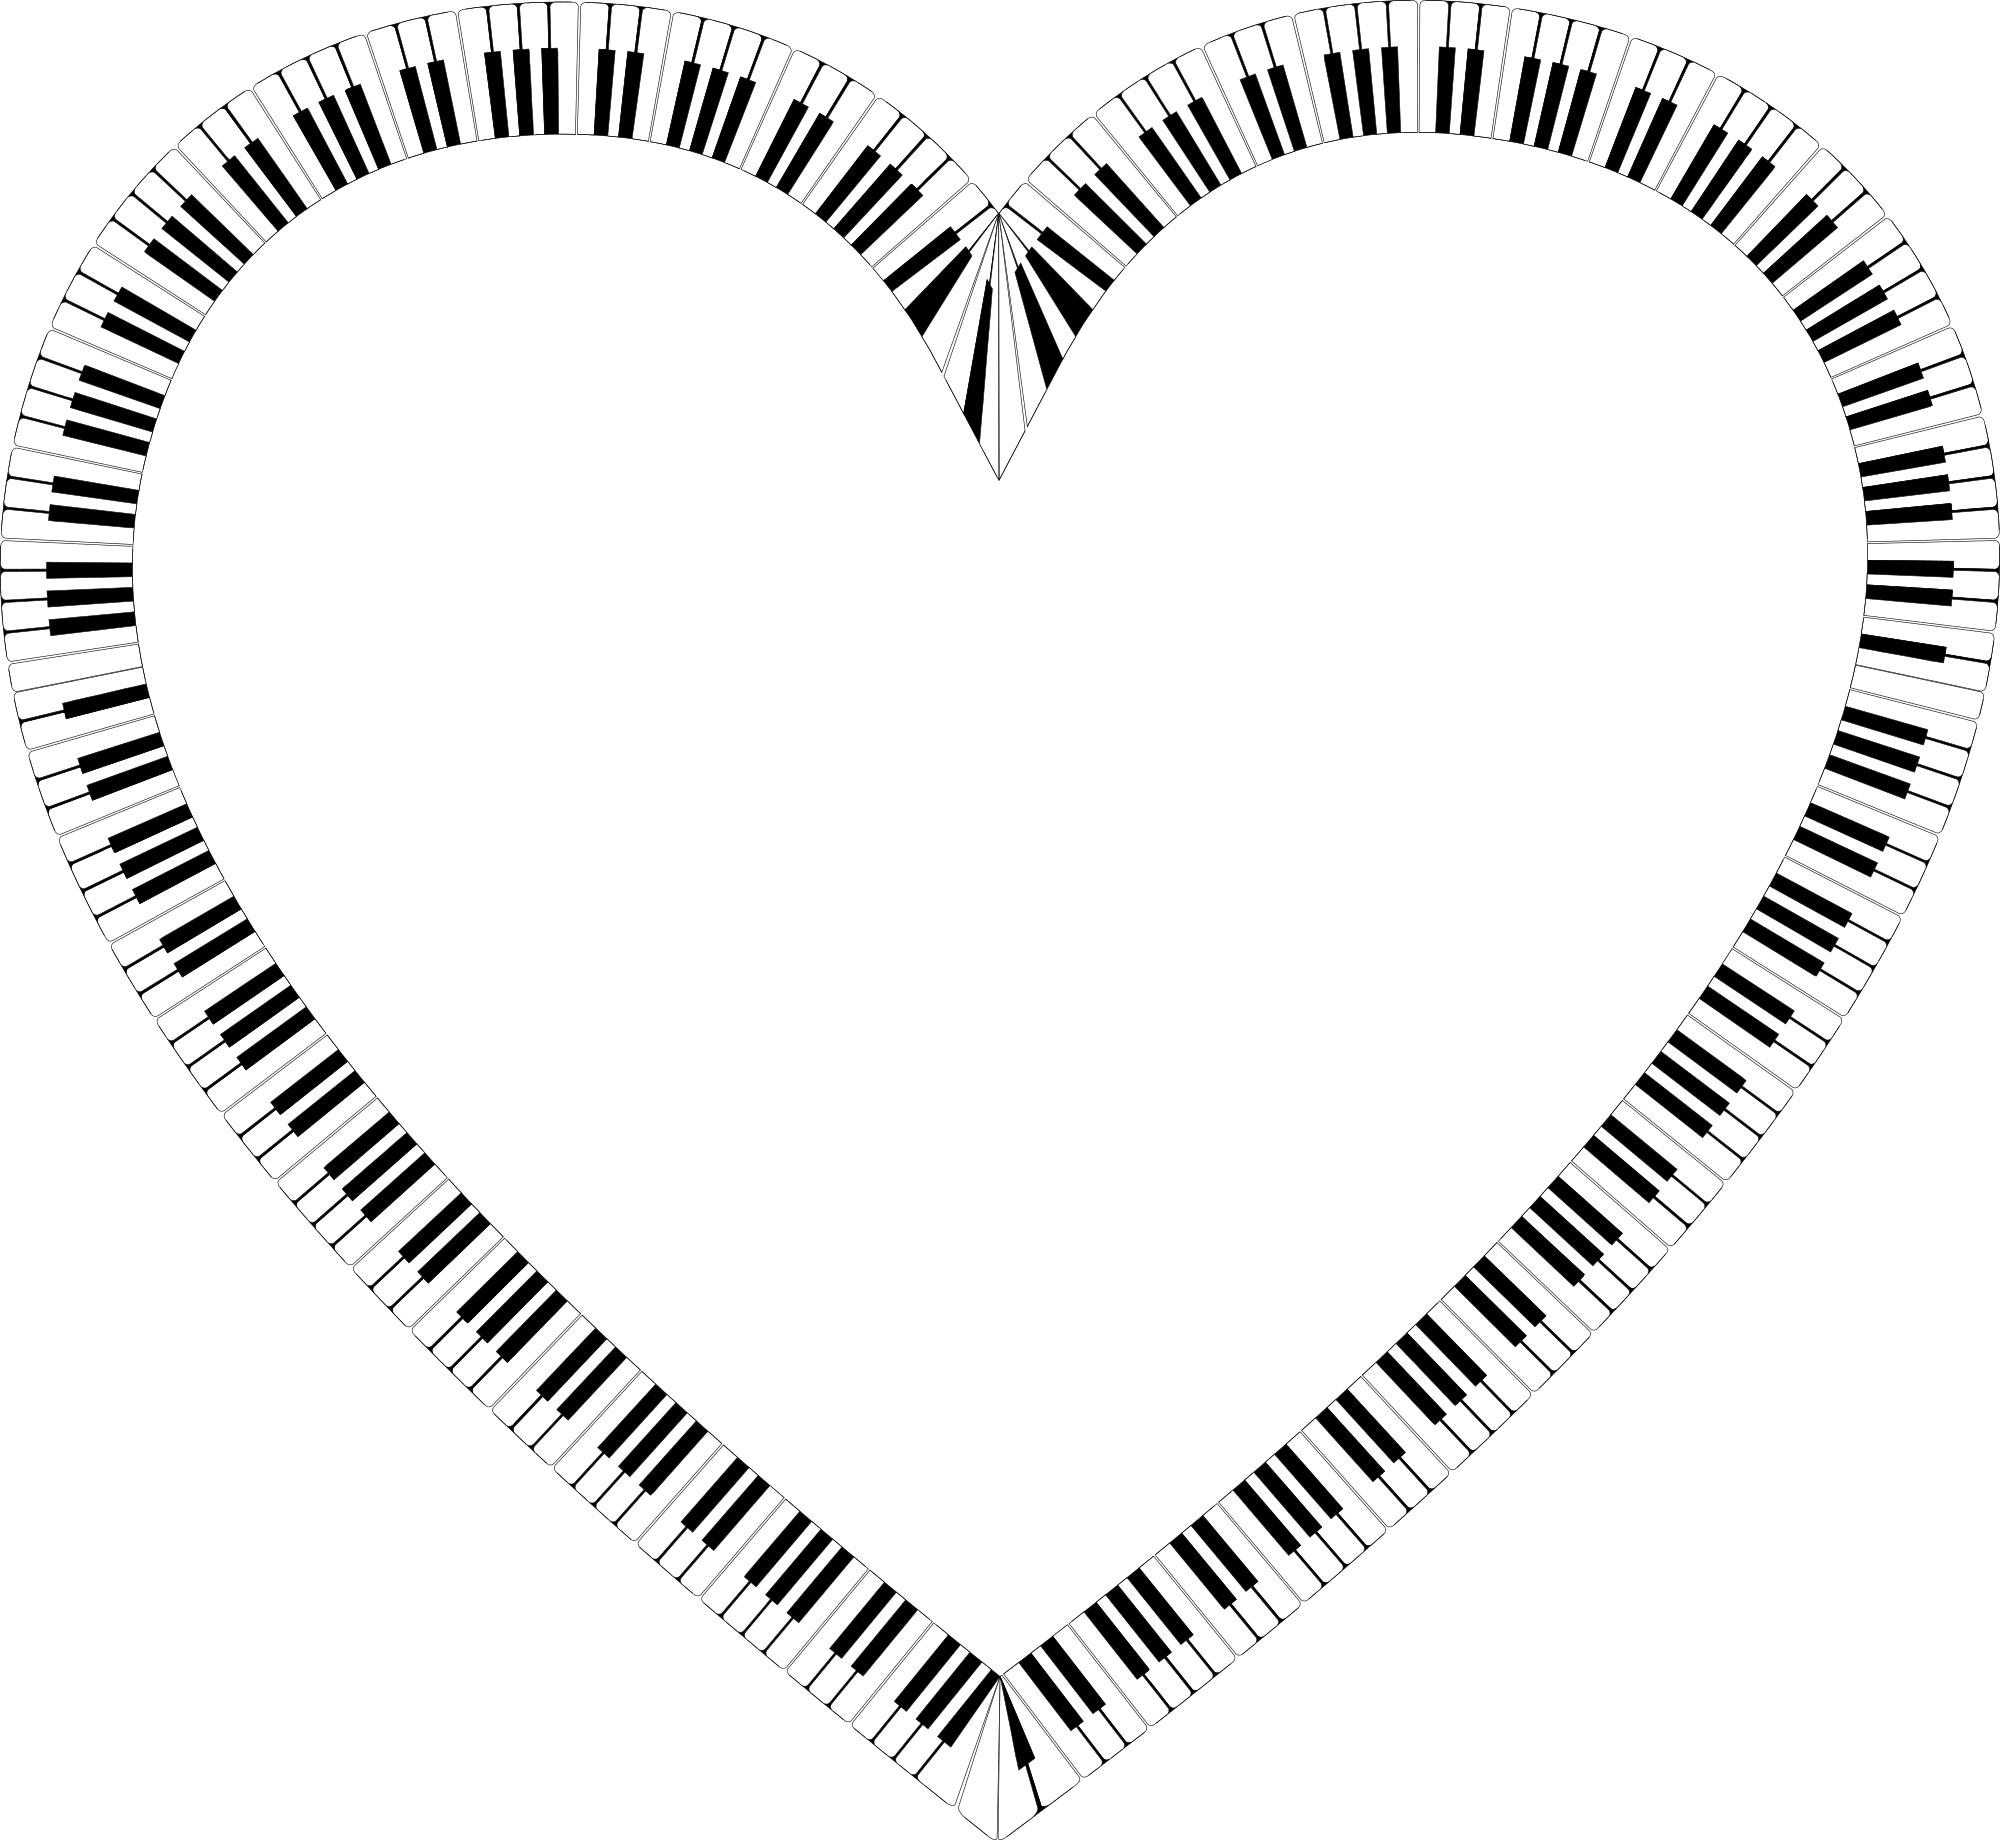 clipart freeuse stock Piano keyboard clipart. Free keys heart shape.